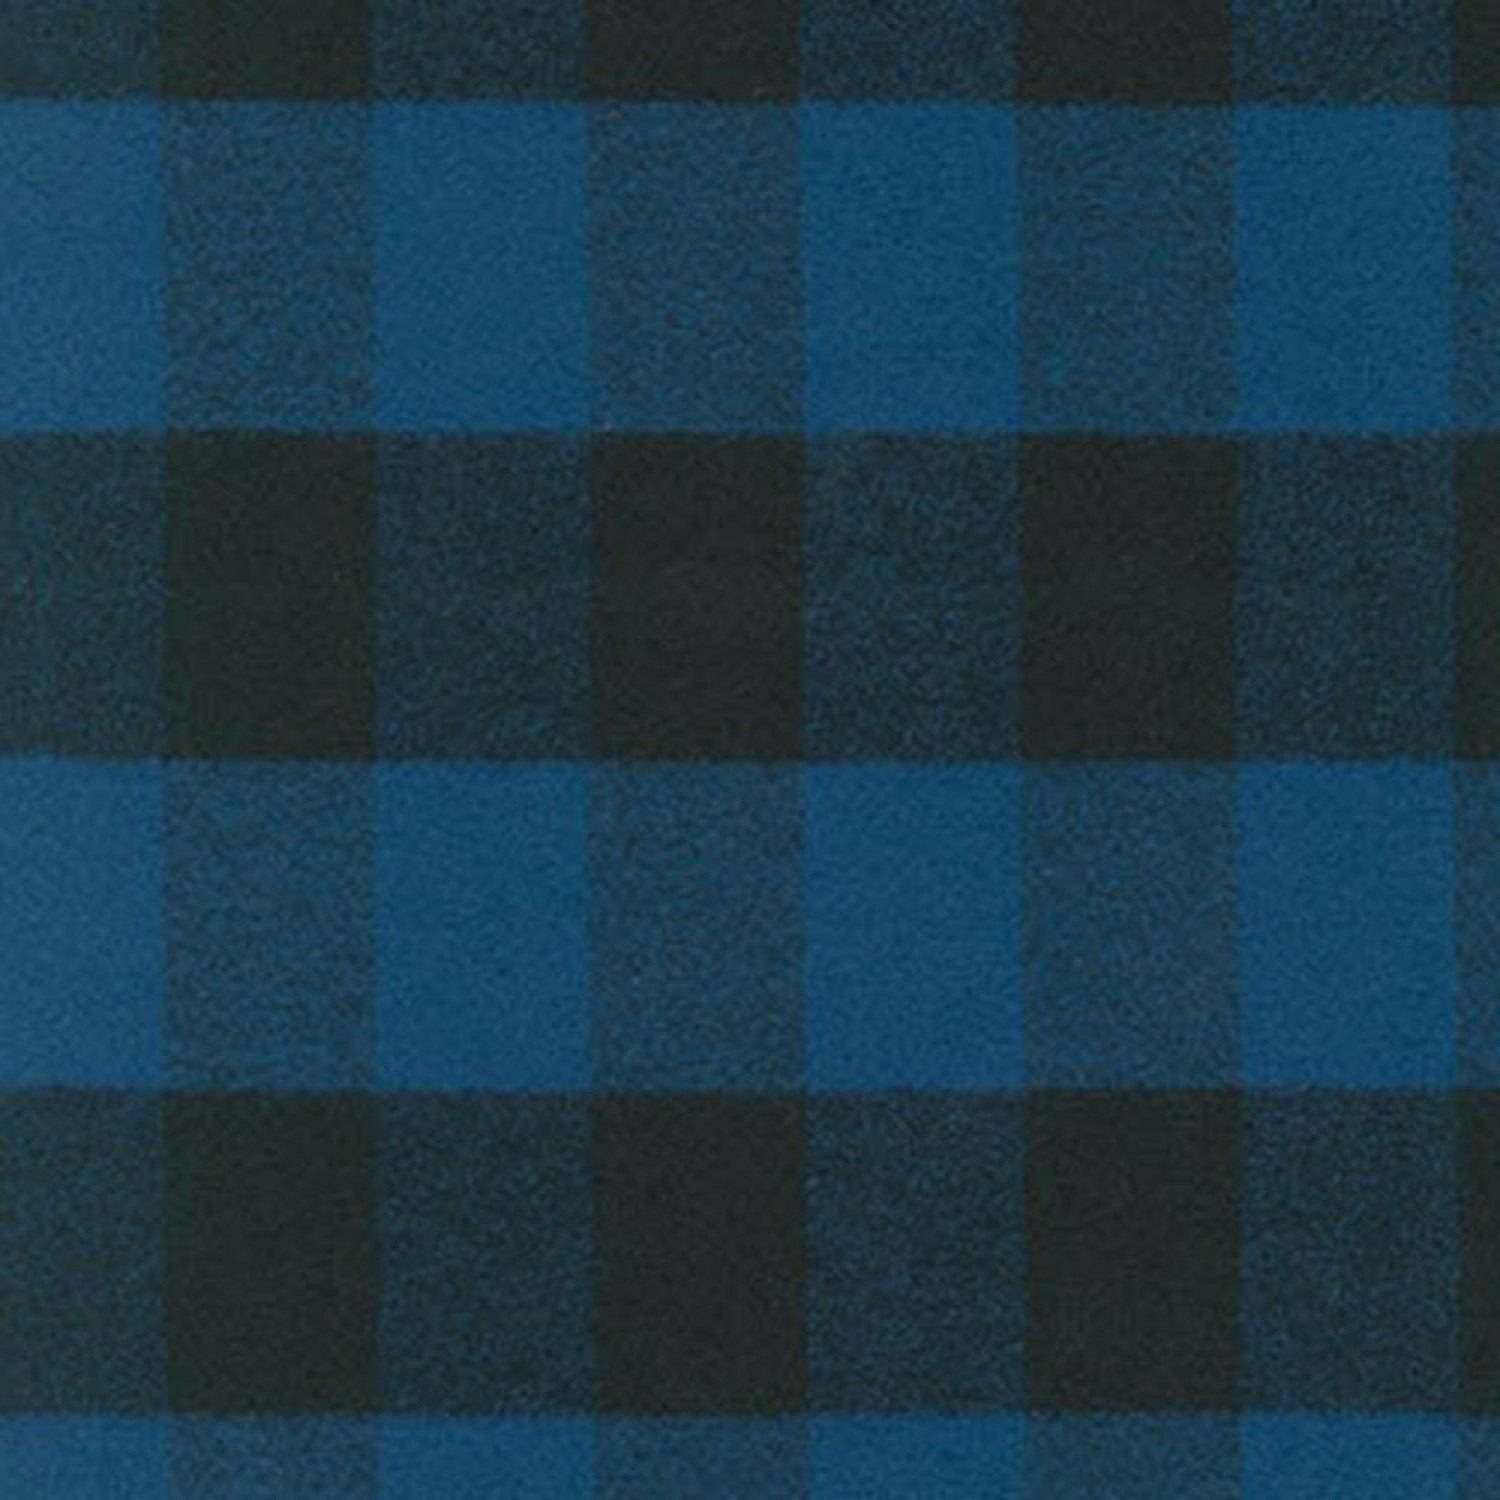 Blue and Black Robert Kaufman Mammoth Plaid Flannel - Raspberry Creek Fabrics Knit Fabric